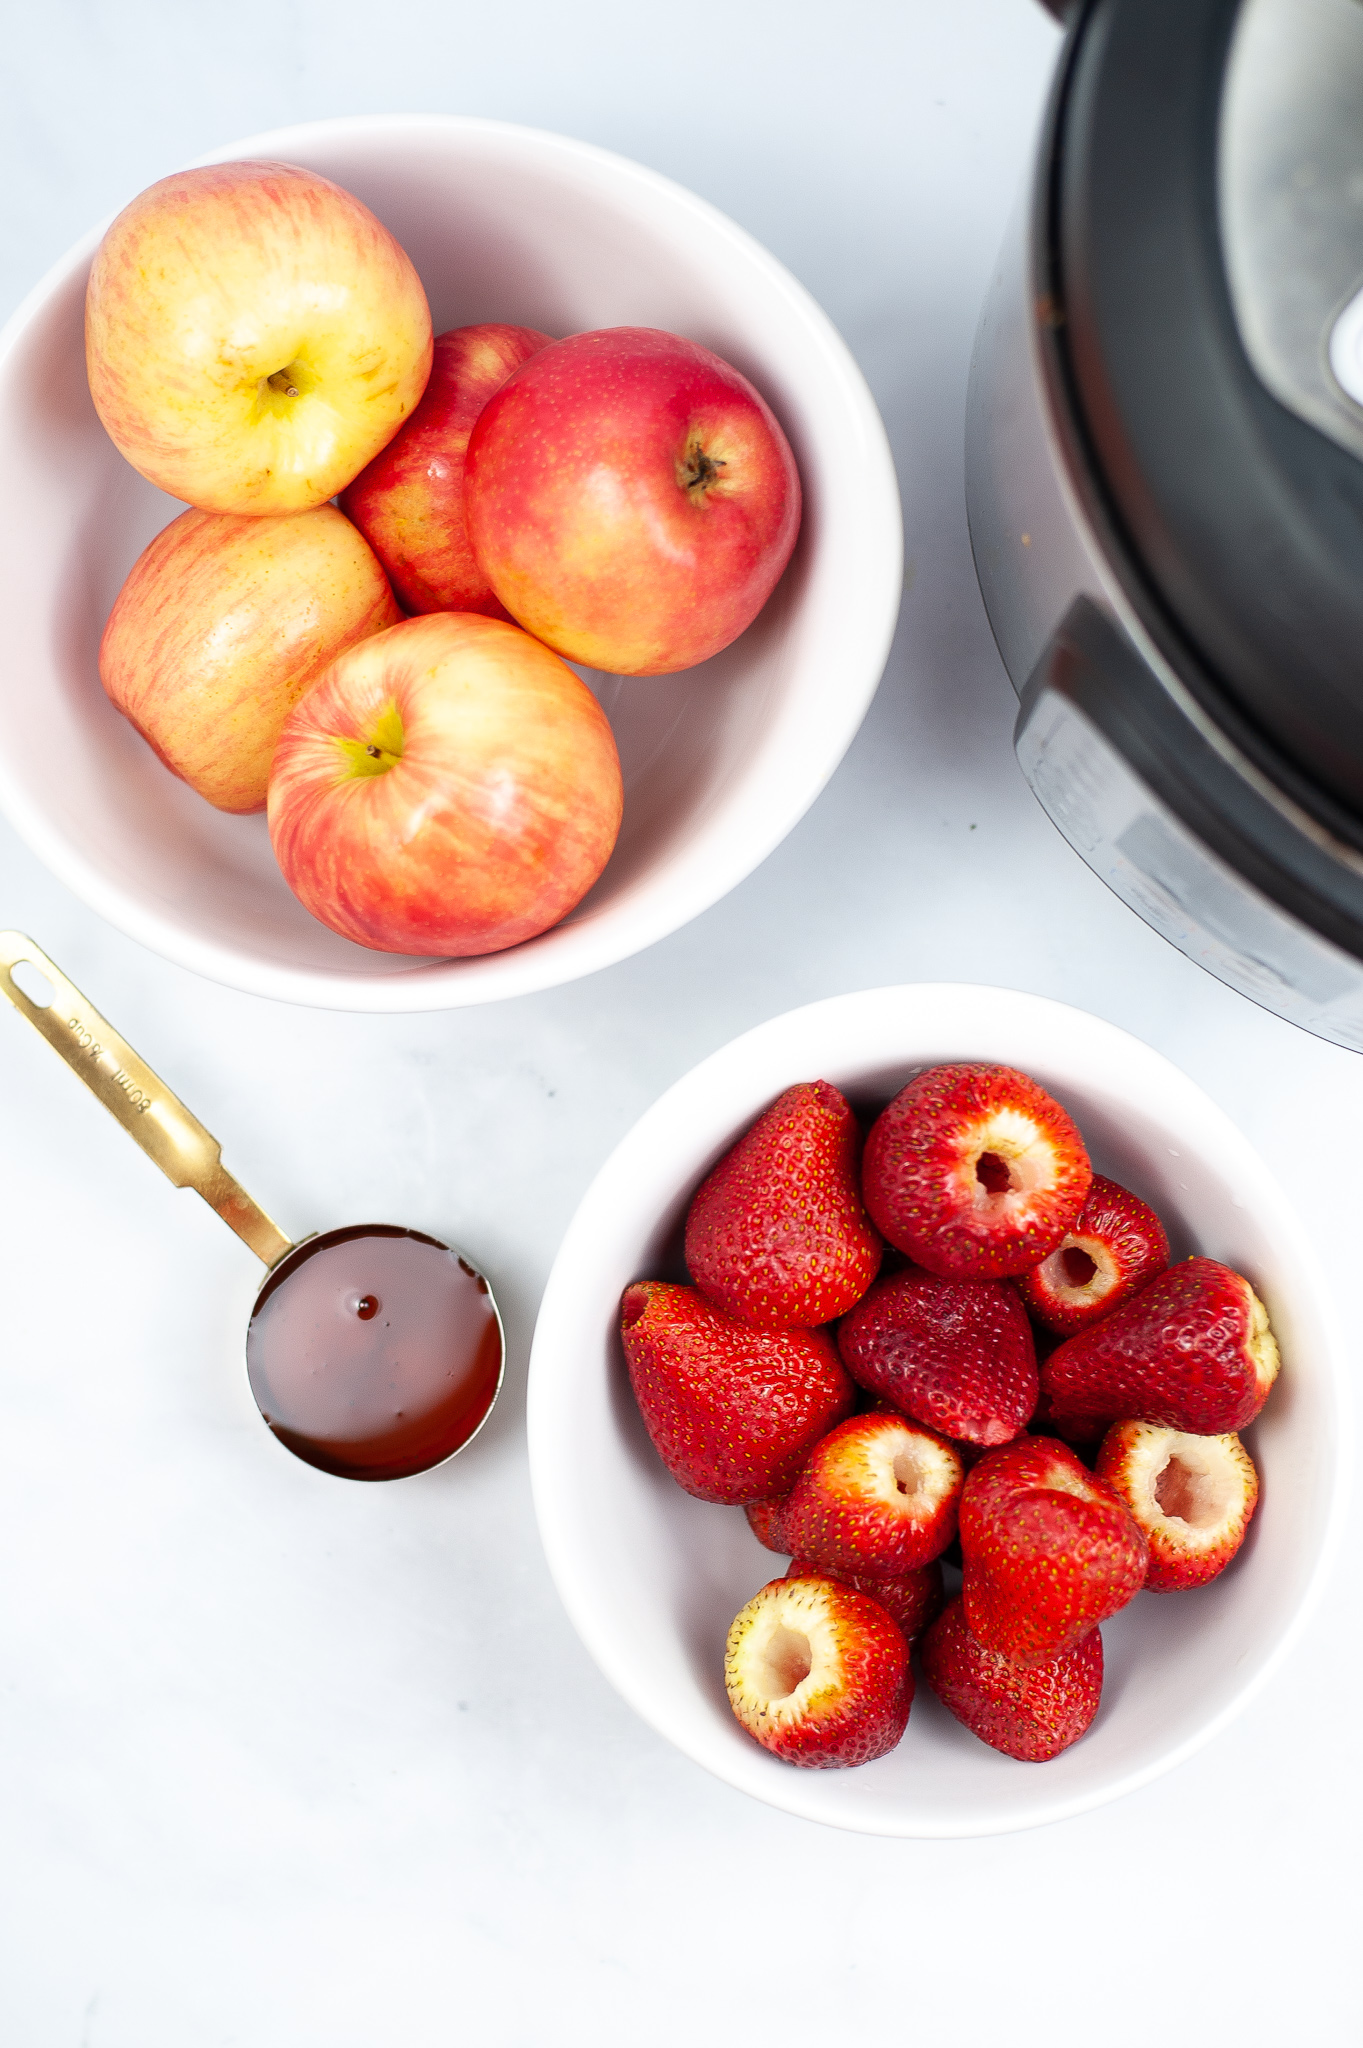 Apples and strawberries with water.